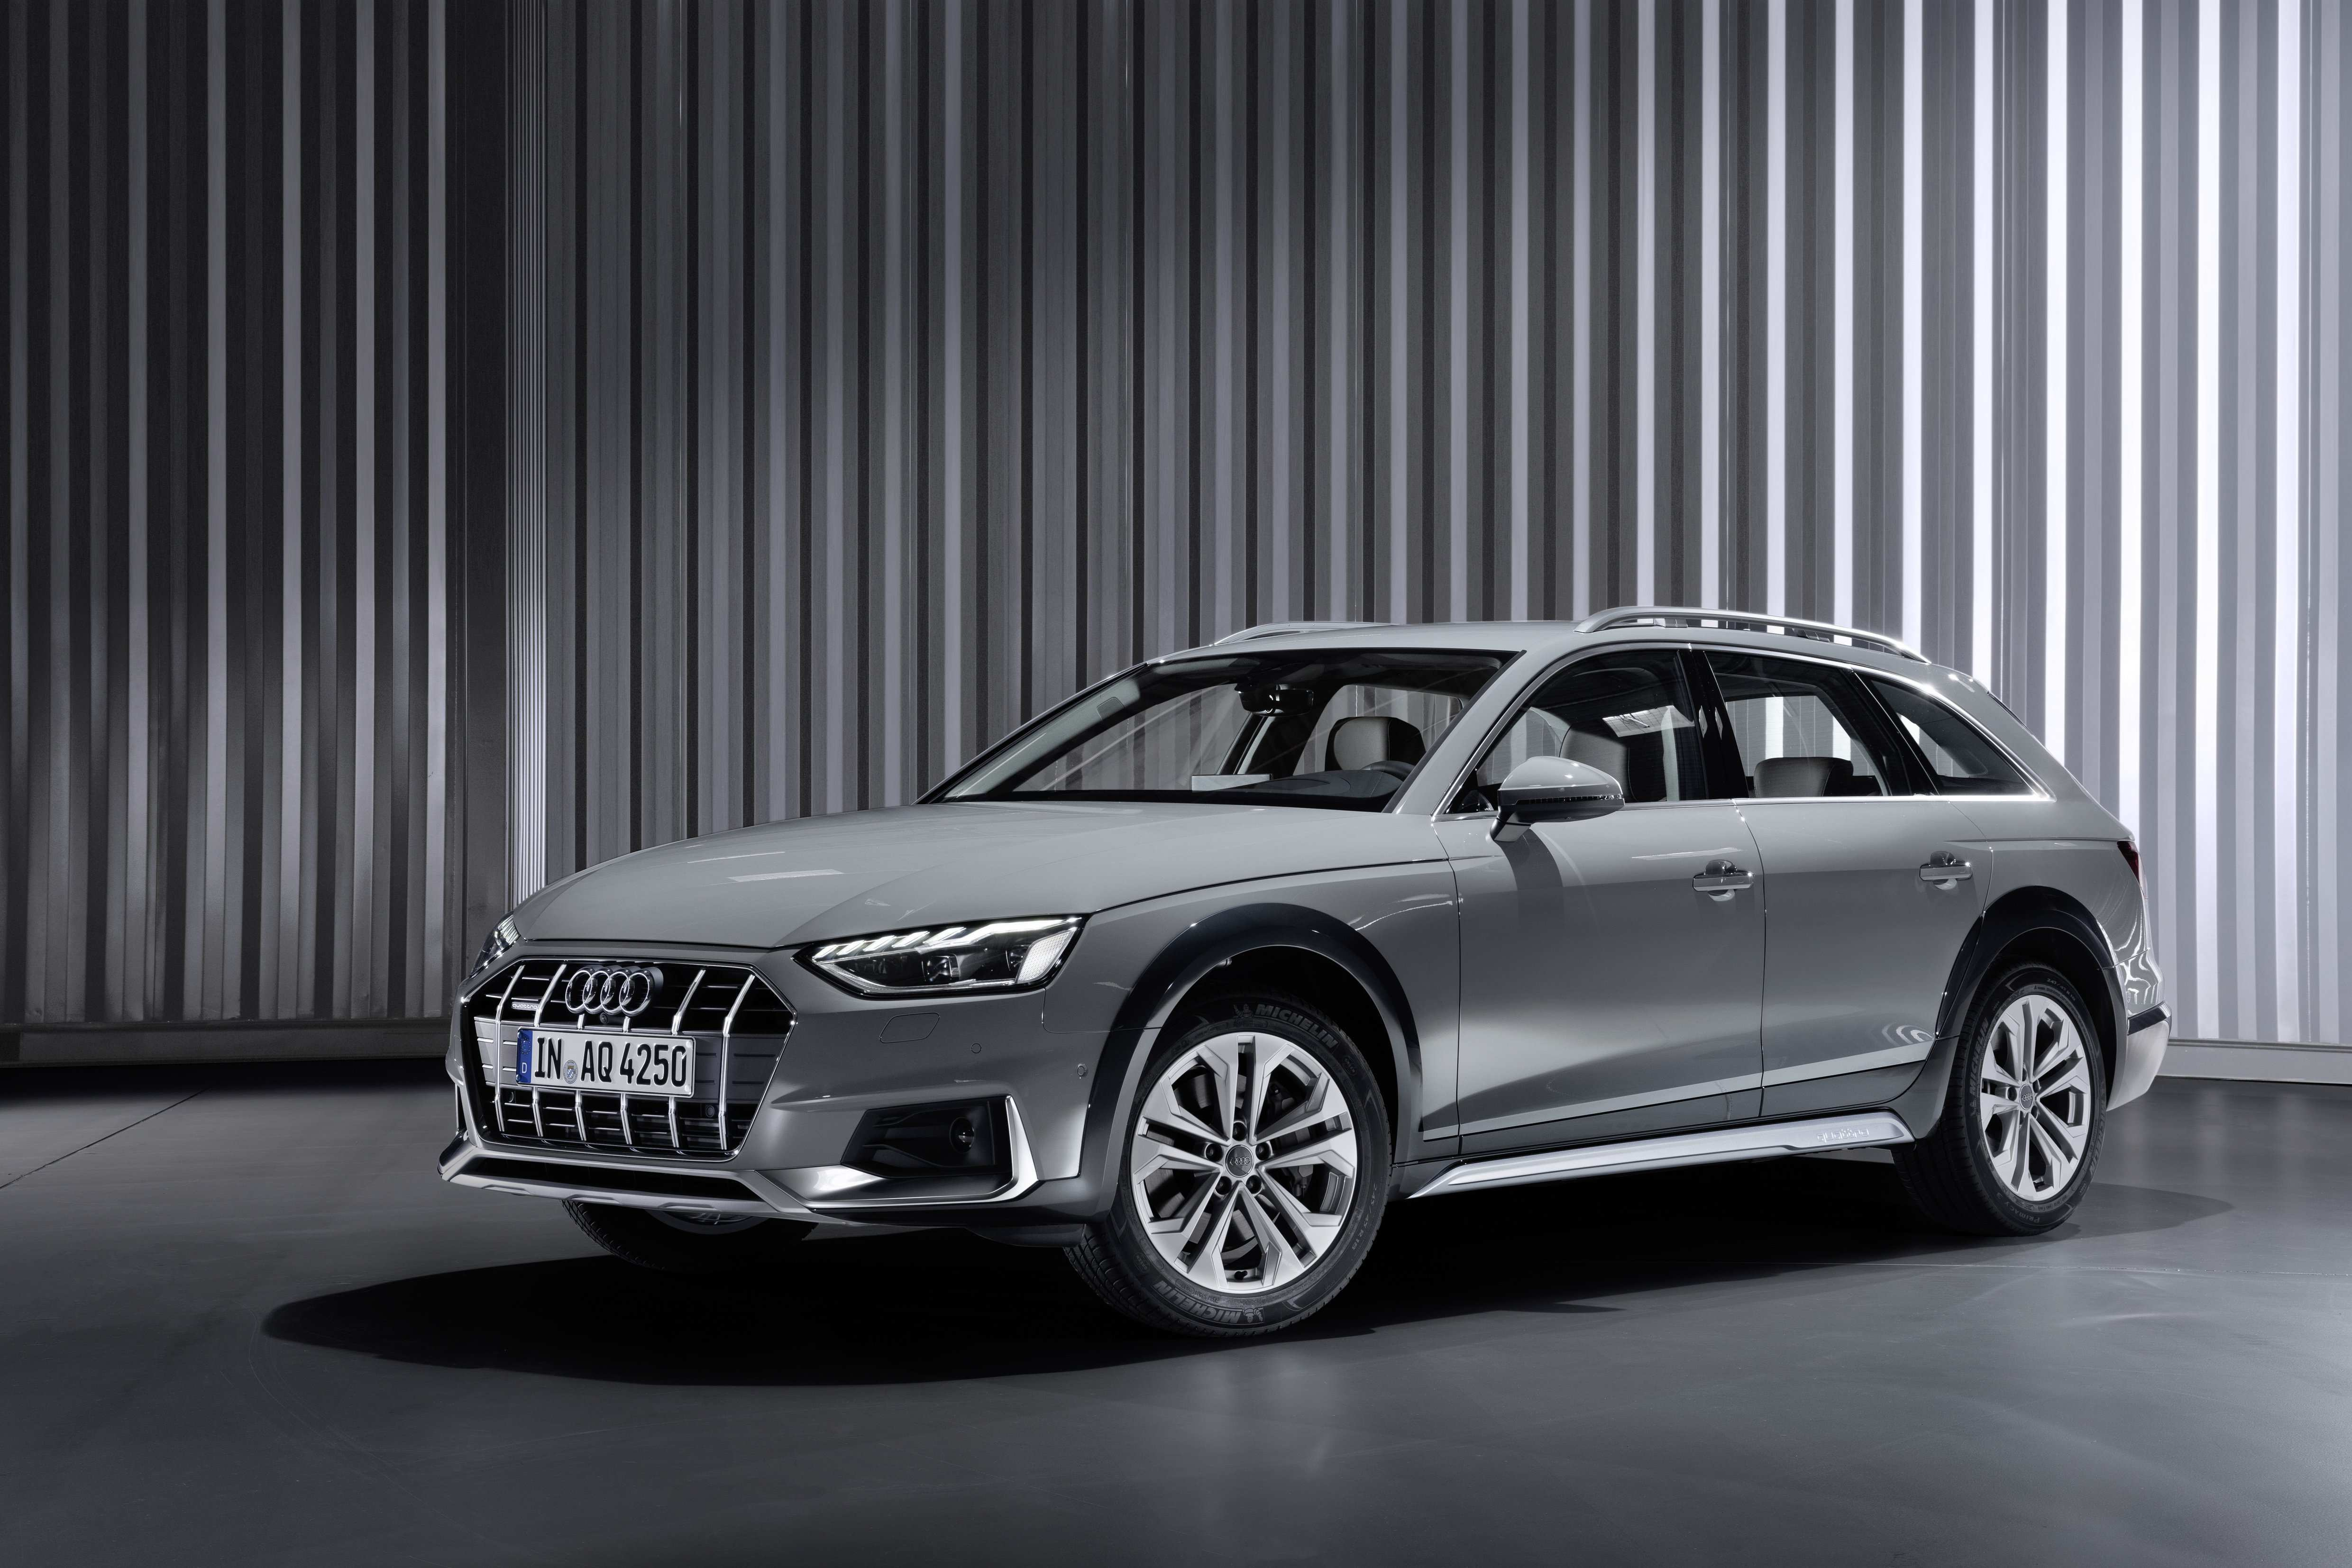 97 The Best 2020 Audi Allroad Pictures